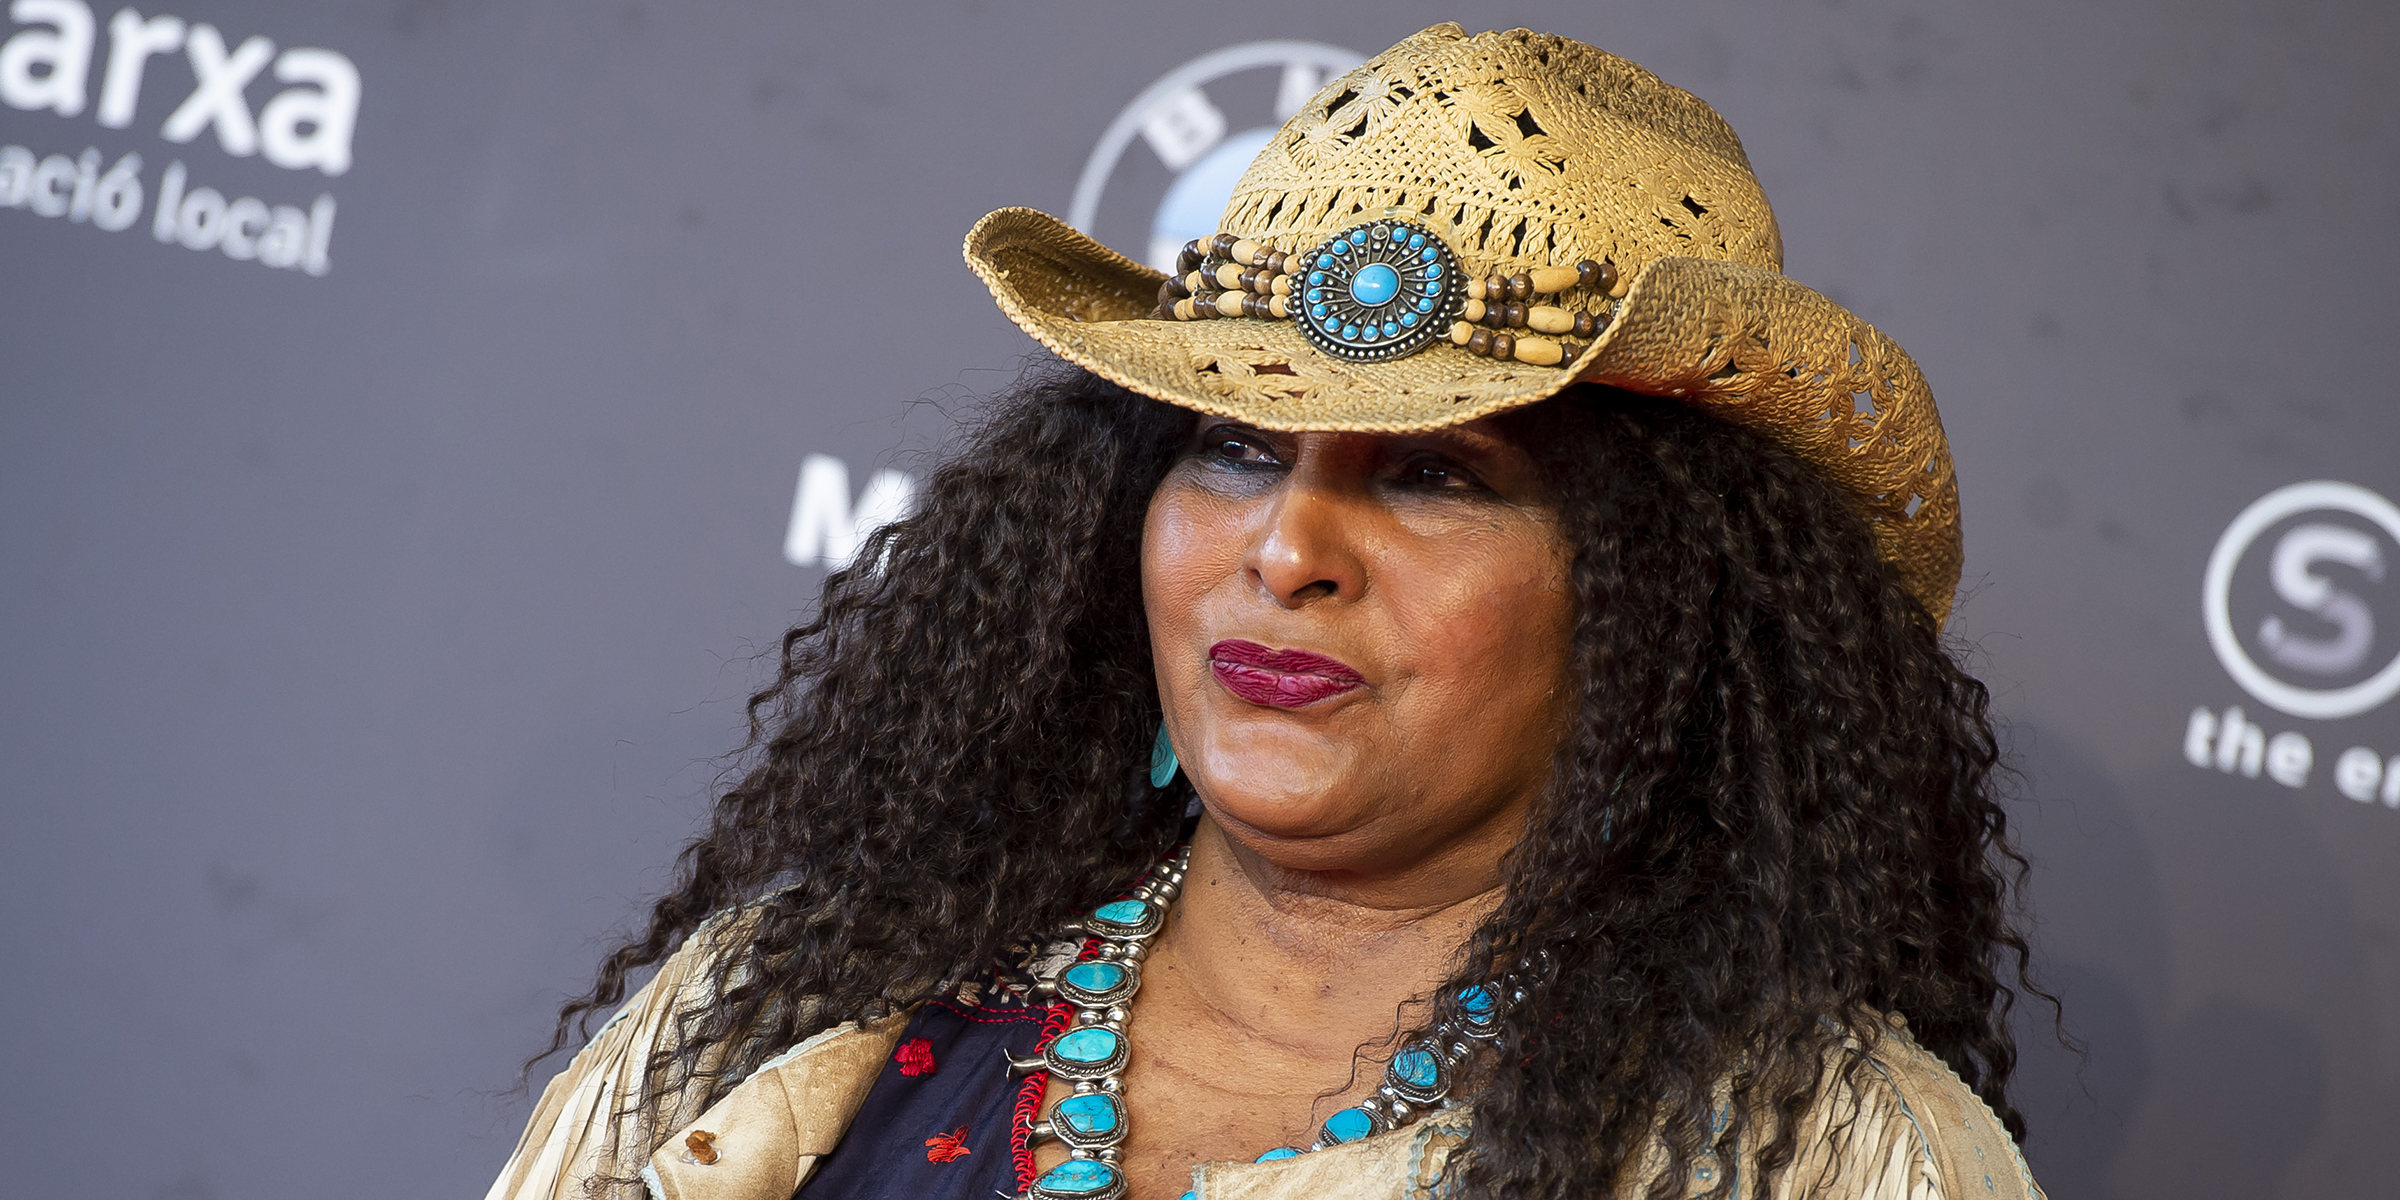 Pam Grier addresses stage 4 cancer rumors